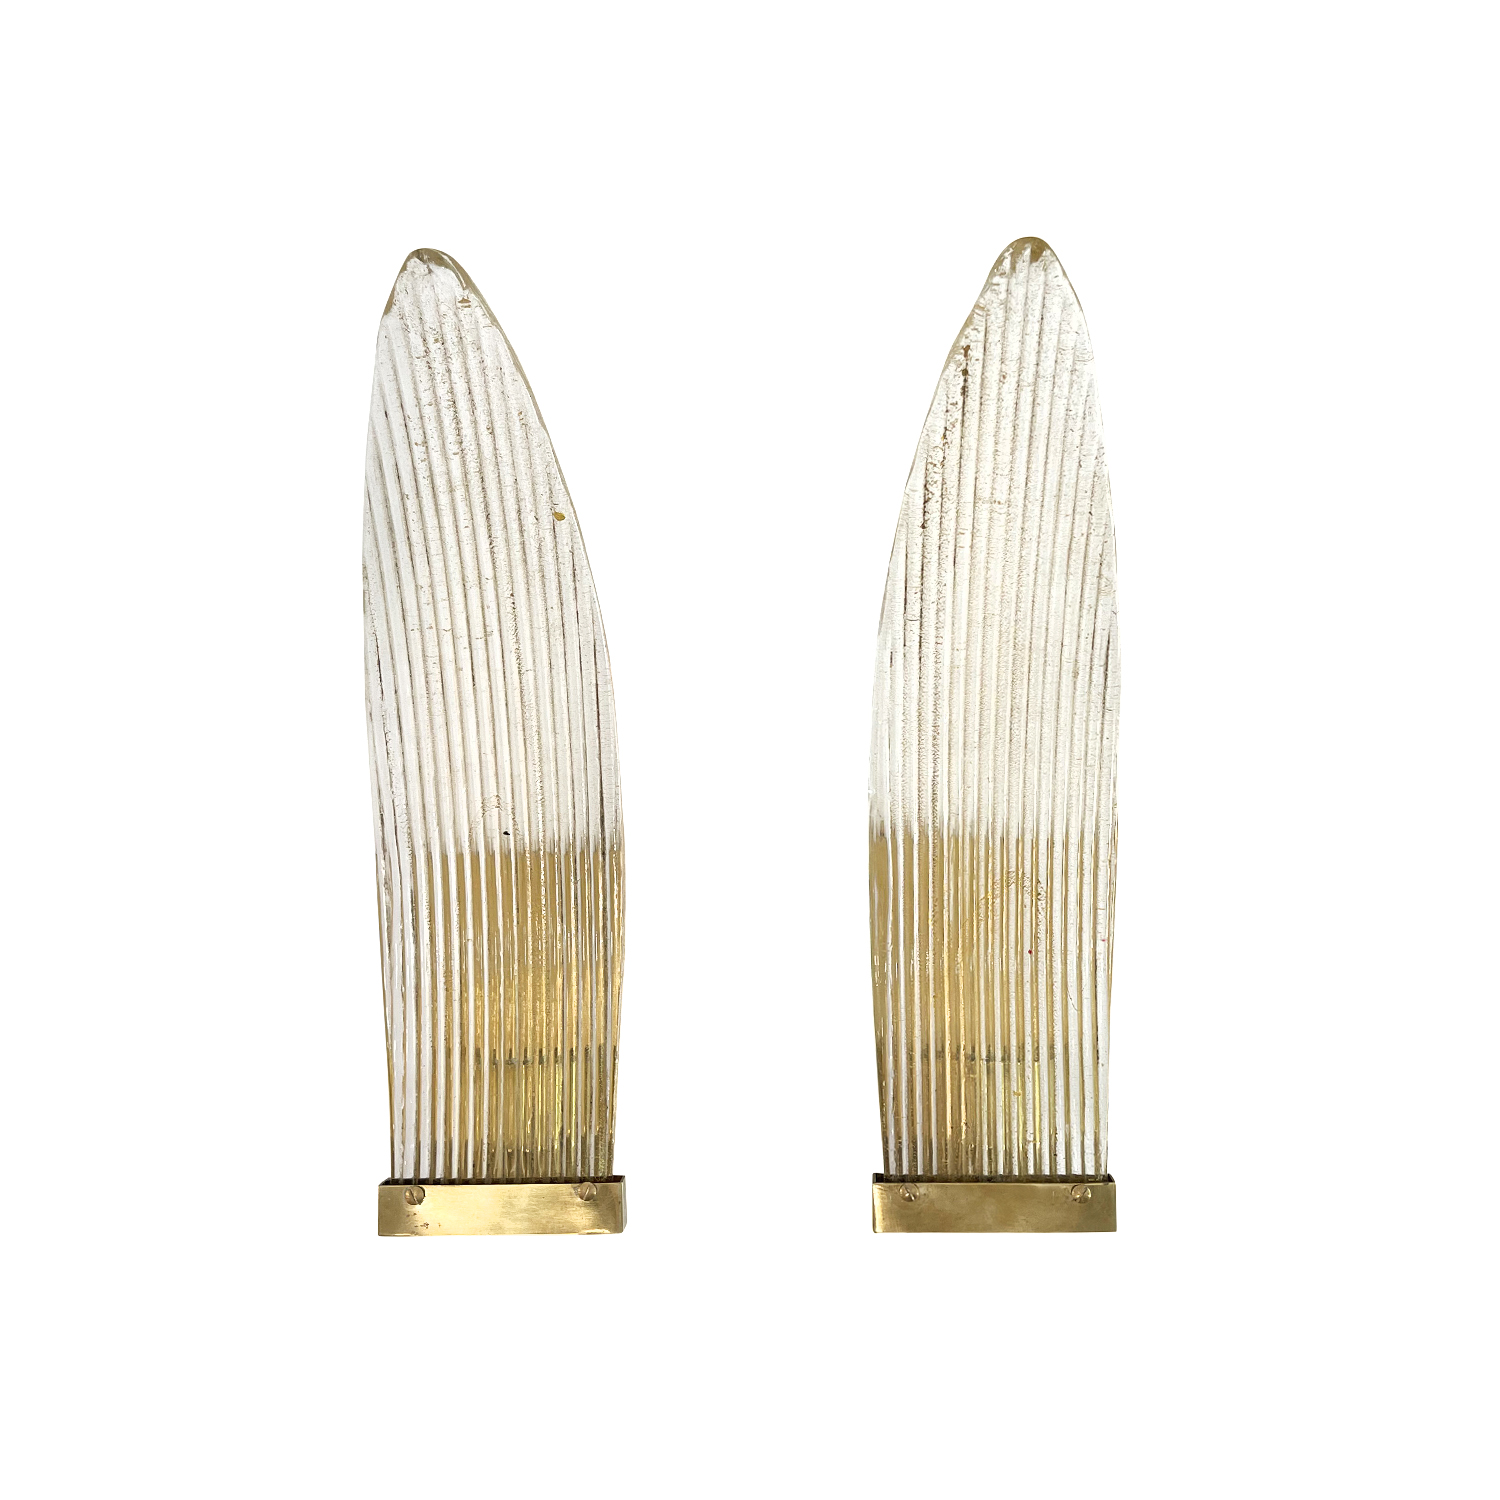 20th Century Italian Pair of Murano Glass Sommerso, Brass Wing Wall Lights